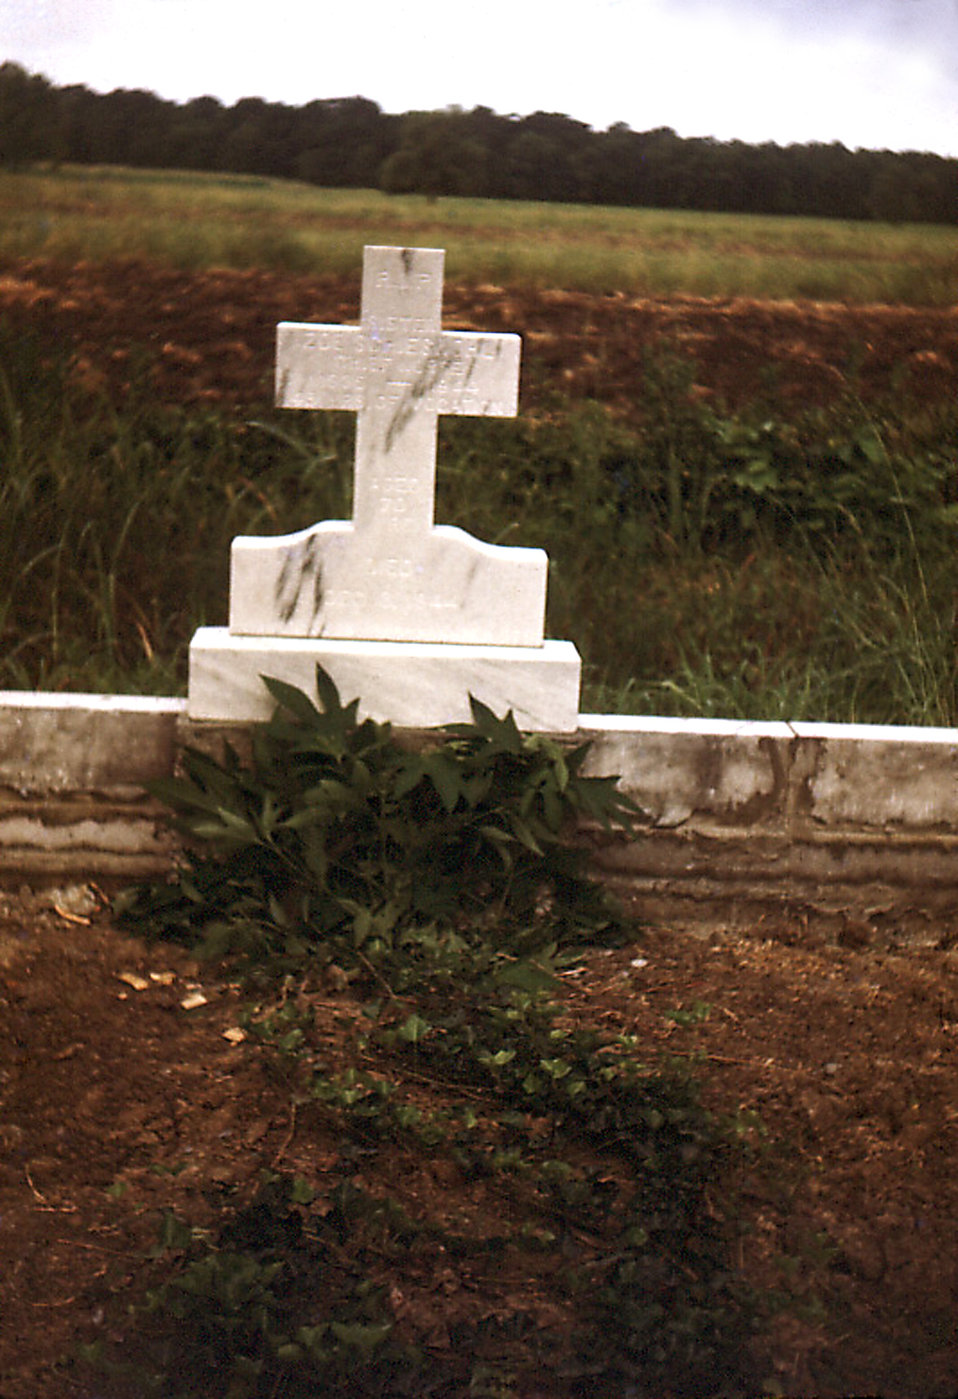 This historic image depicted a the grave site commemorating the passing of the former Carville, Louisiana Leprosarium Head Nurse, Sister Zoe